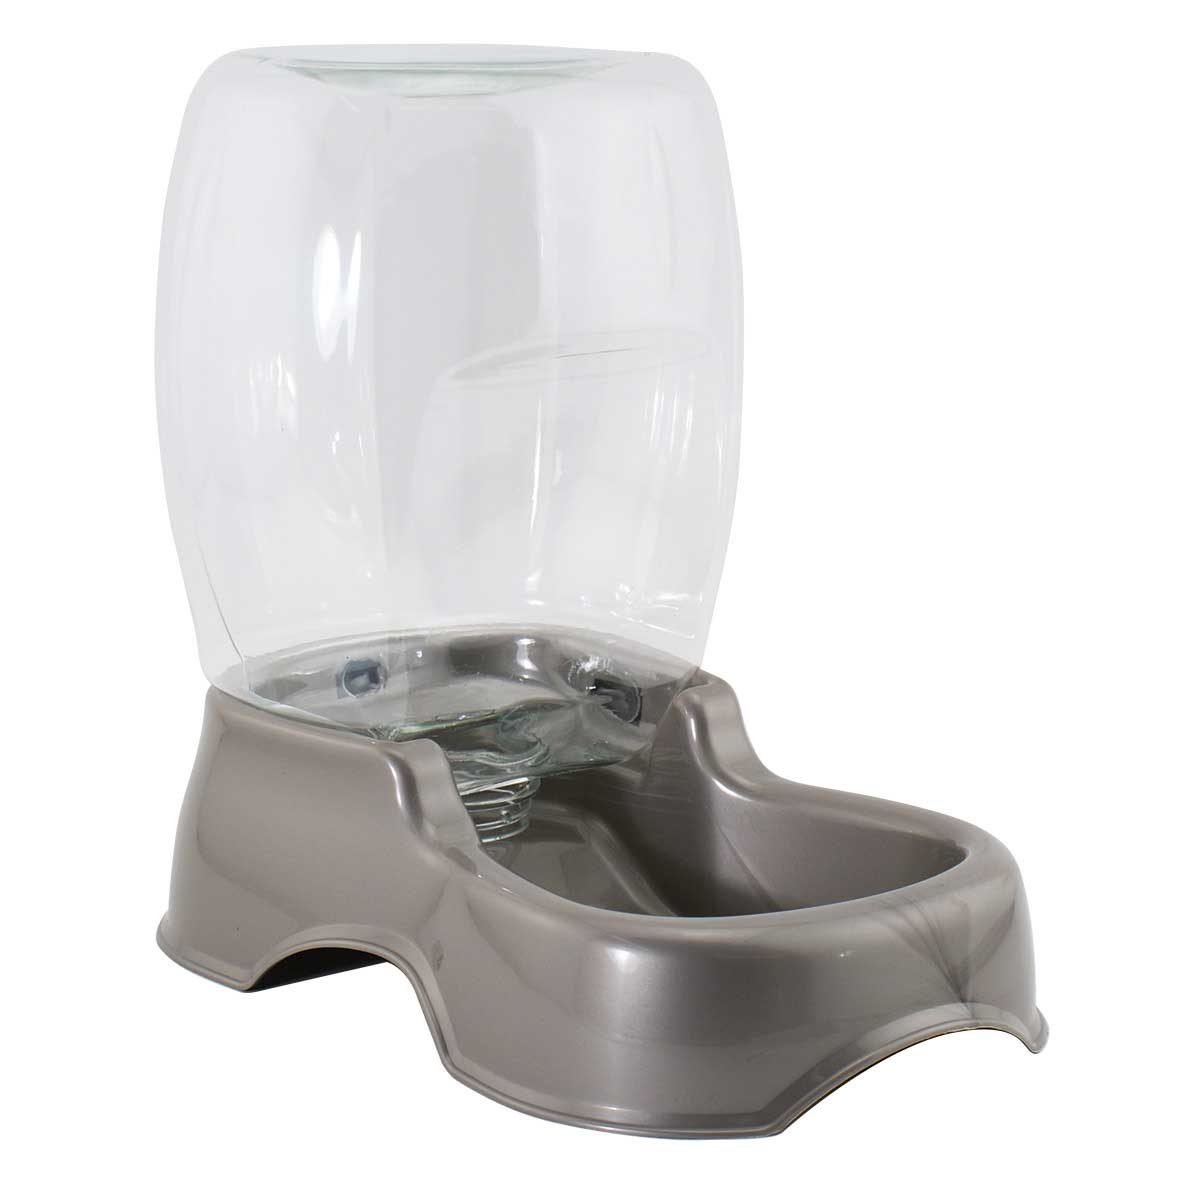 Pearl Tan Petmate Pet Cafe Waterer - 1.5 Gallon